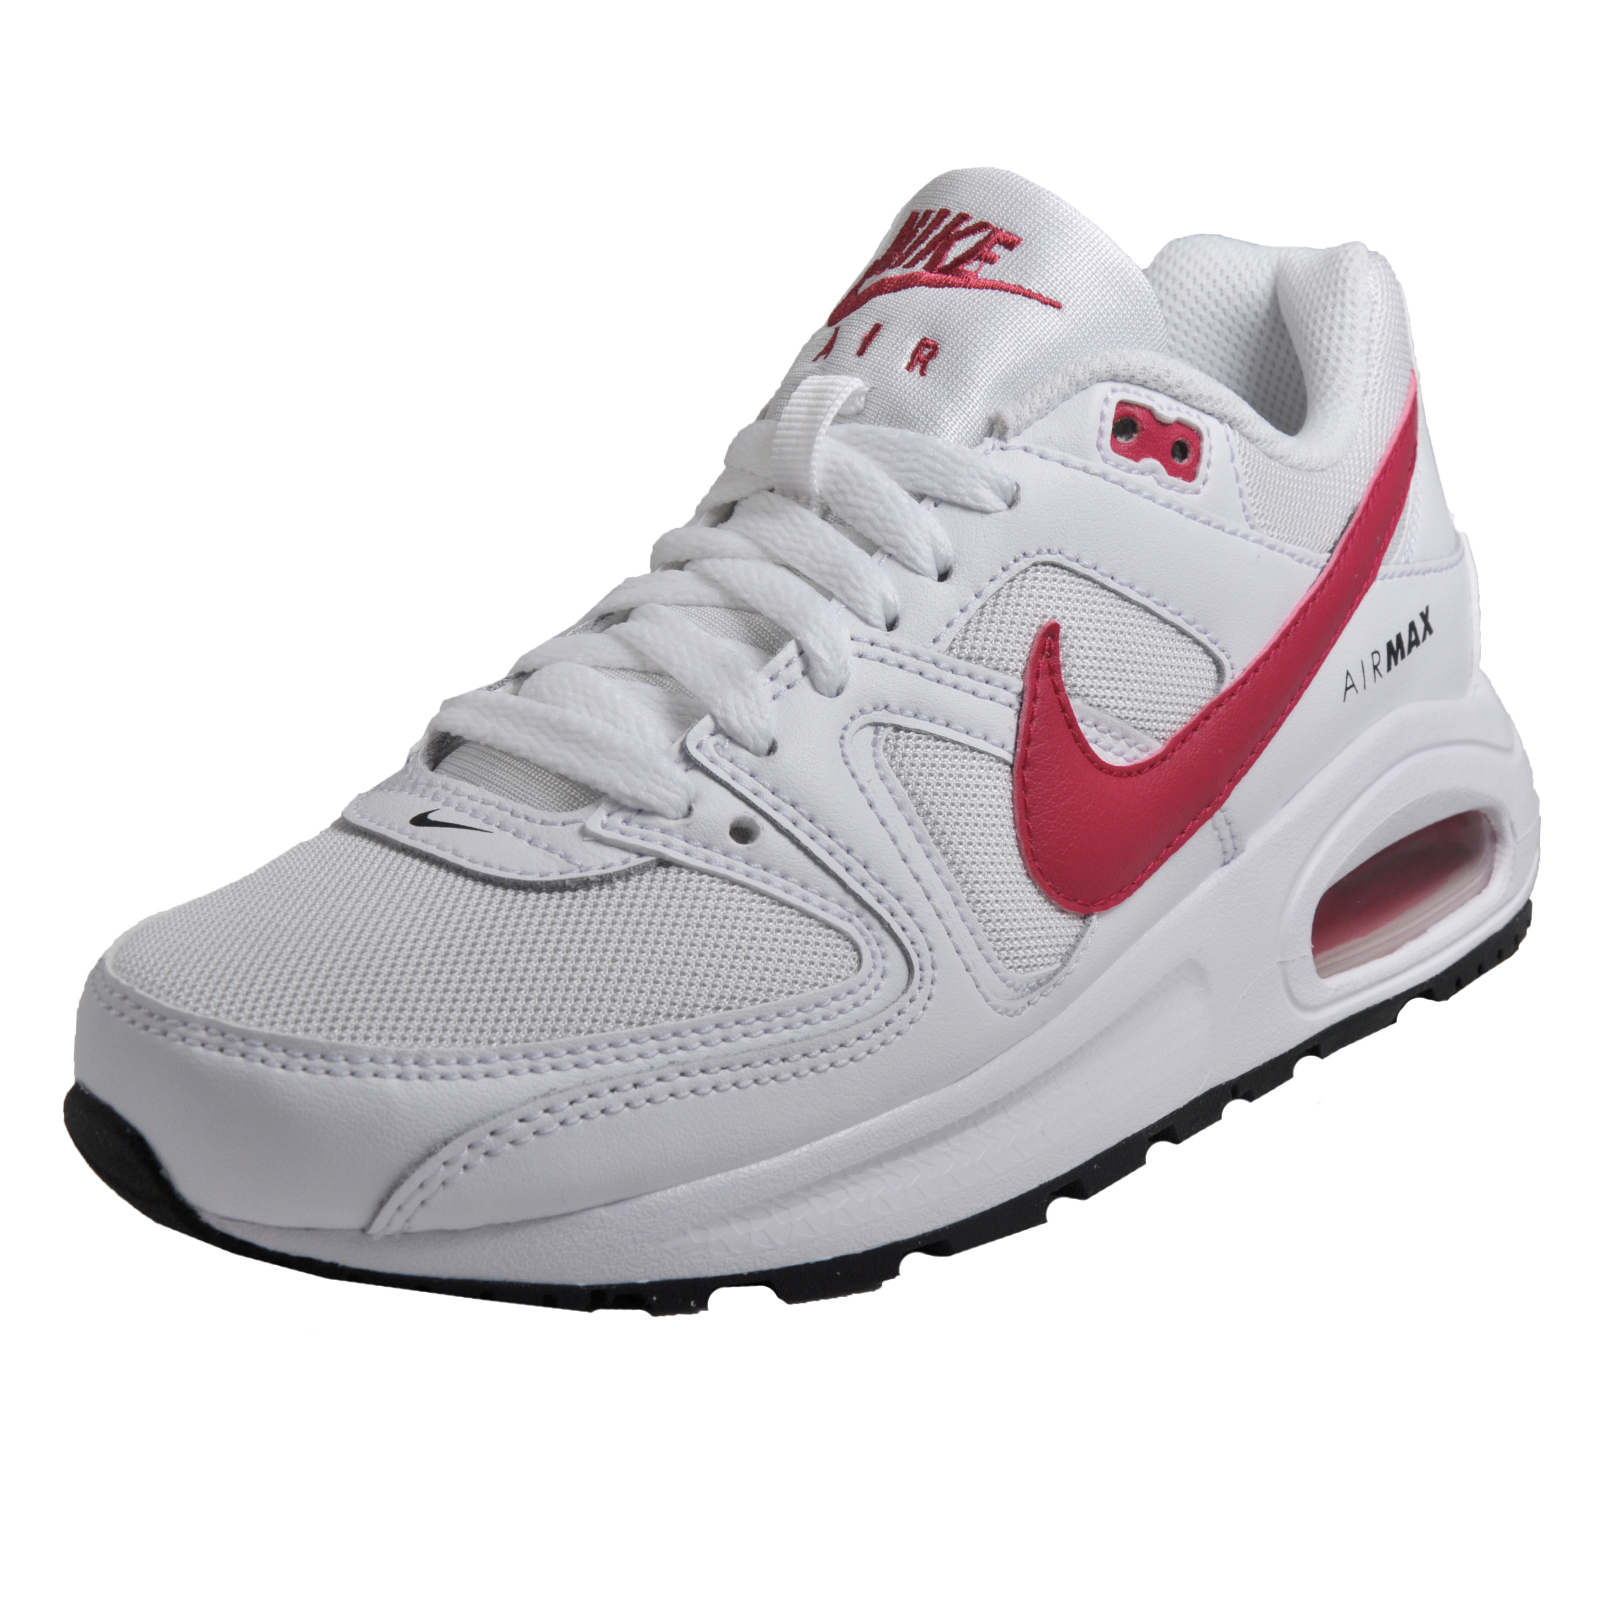 746b92df7e Details about Nike Air Max Command Flex Women's Girls Classic Casual  Leather Trainers White